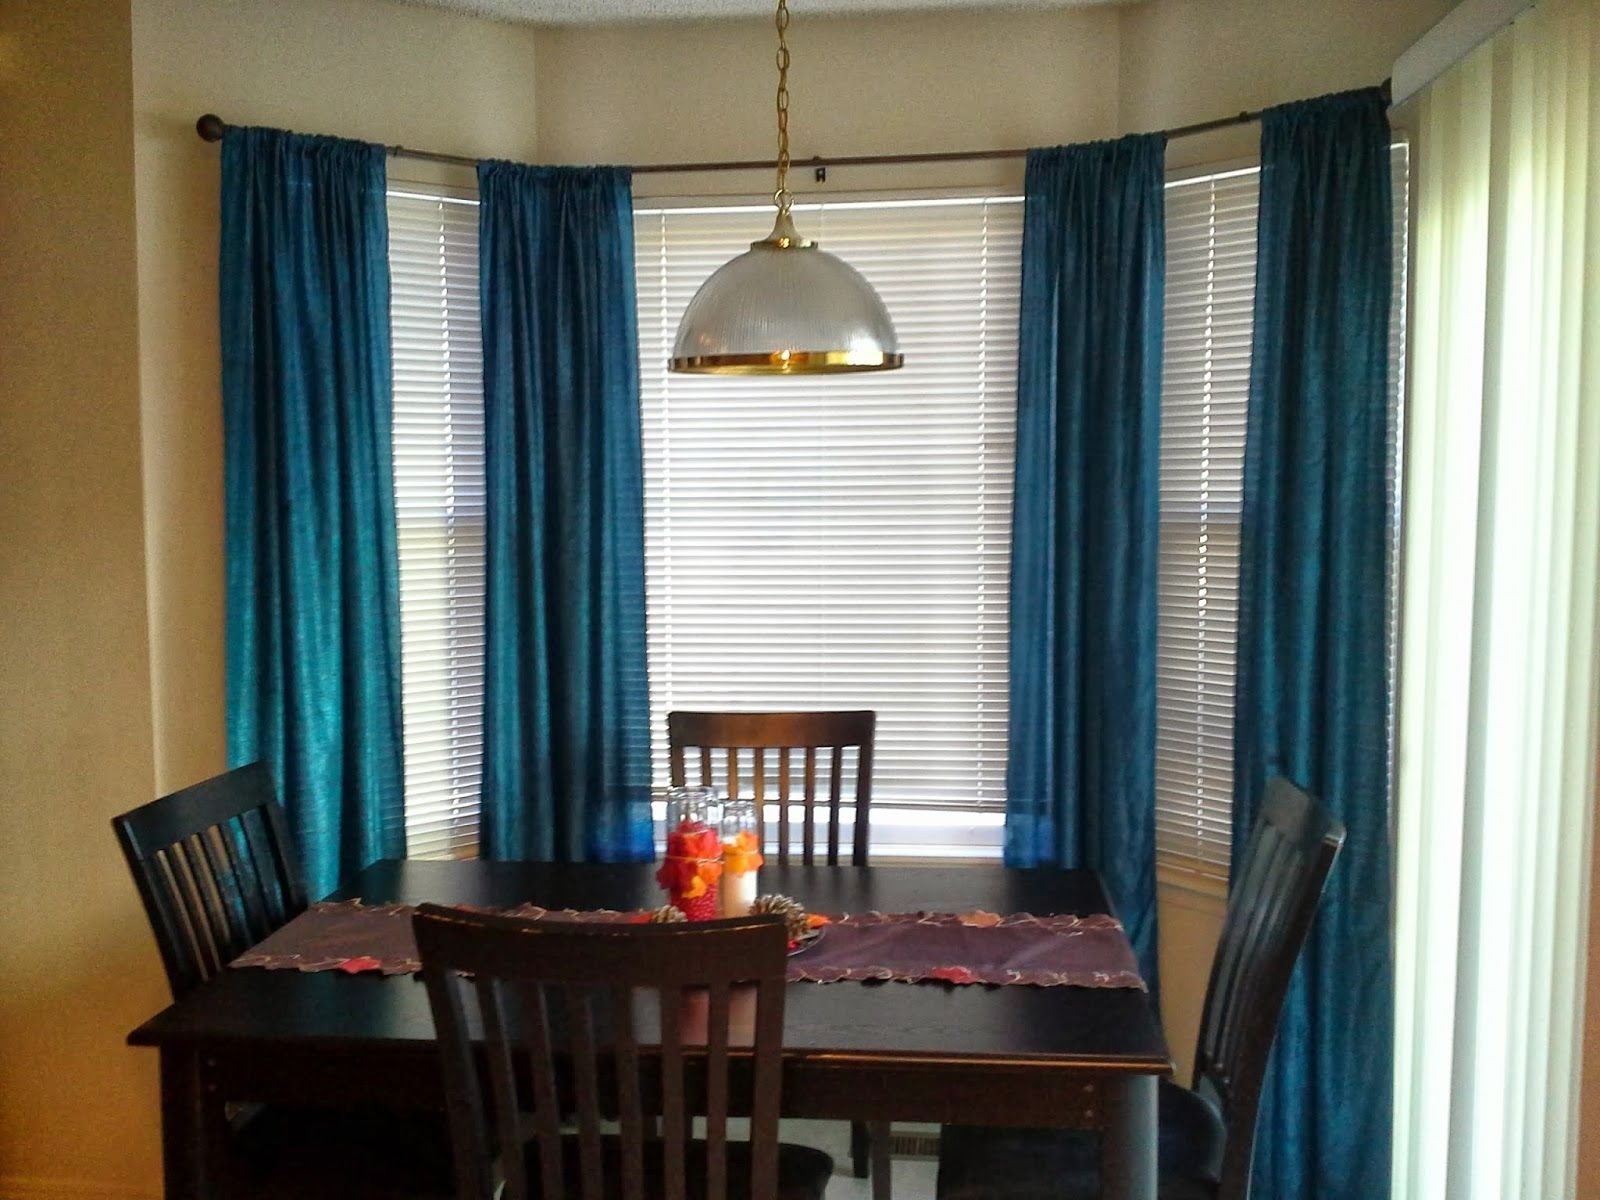 Kitchen bow window curtains realtagfo pinterest